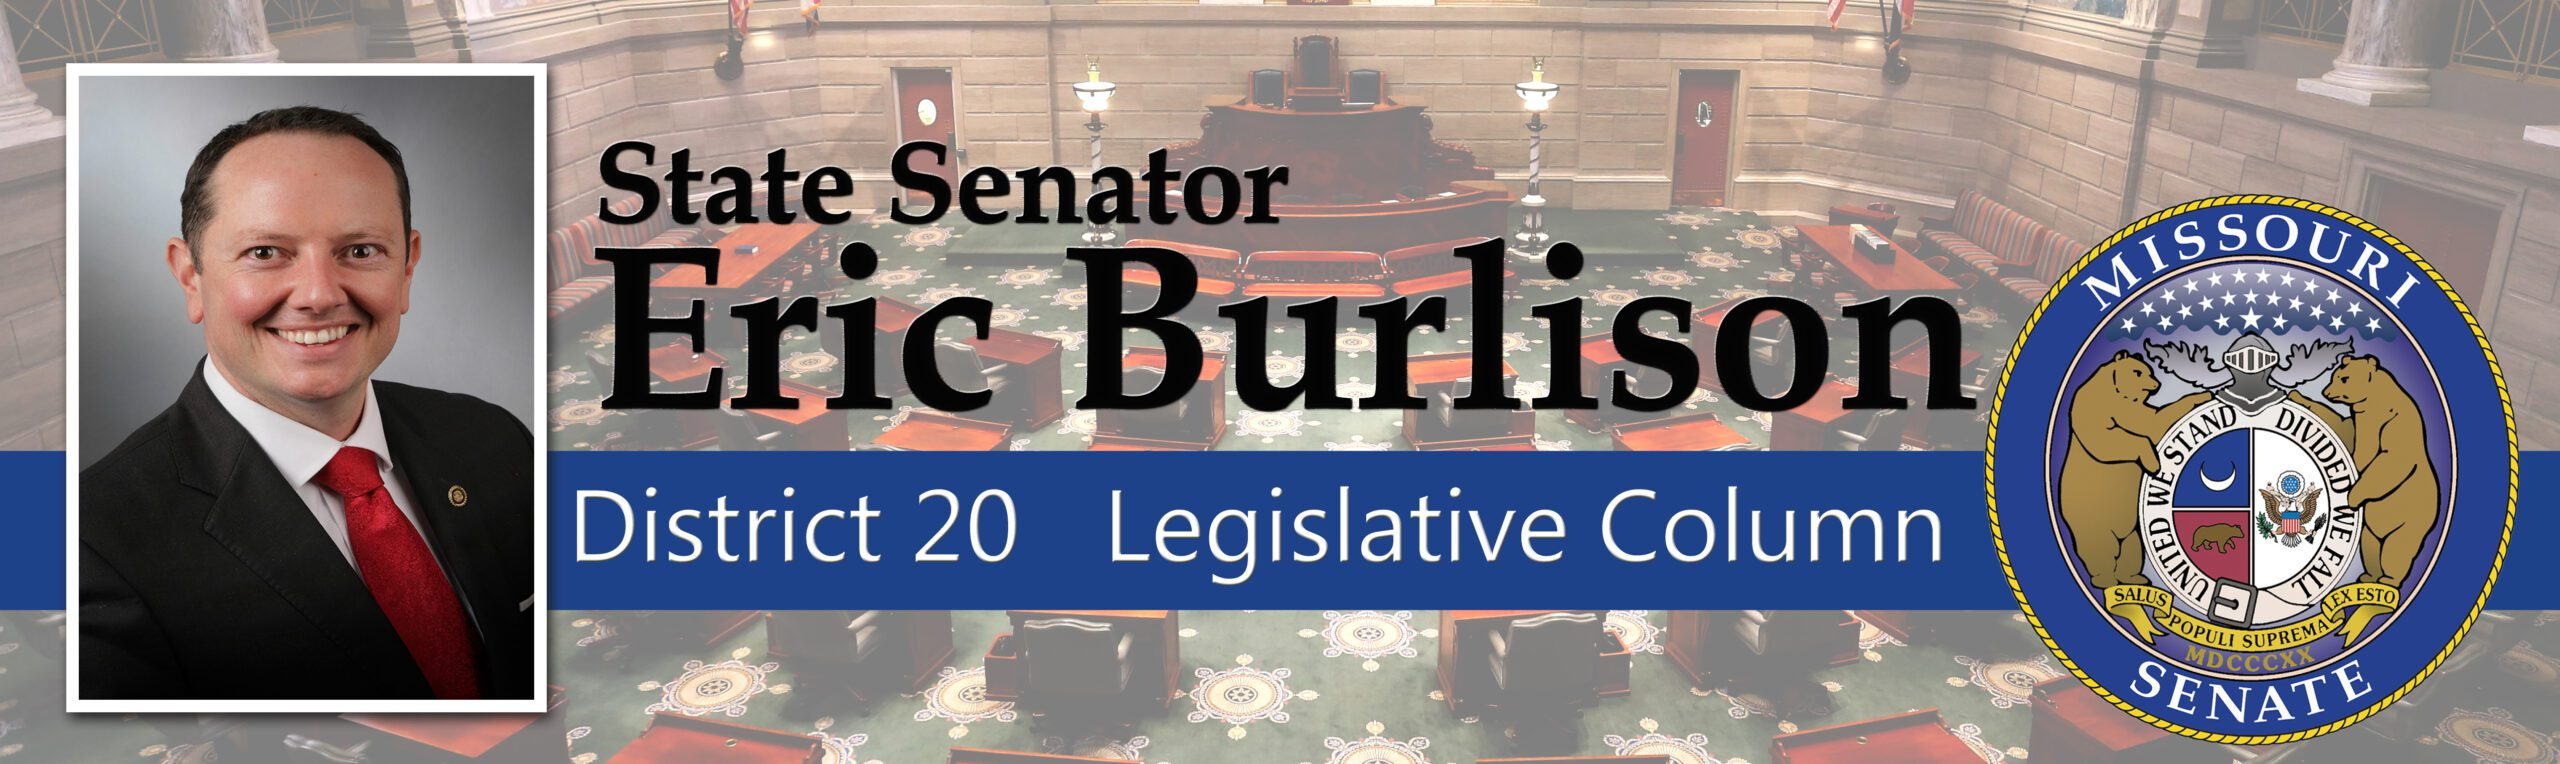 Sen. Eric Burlison's Legislative Column for Nov. 20, 2020